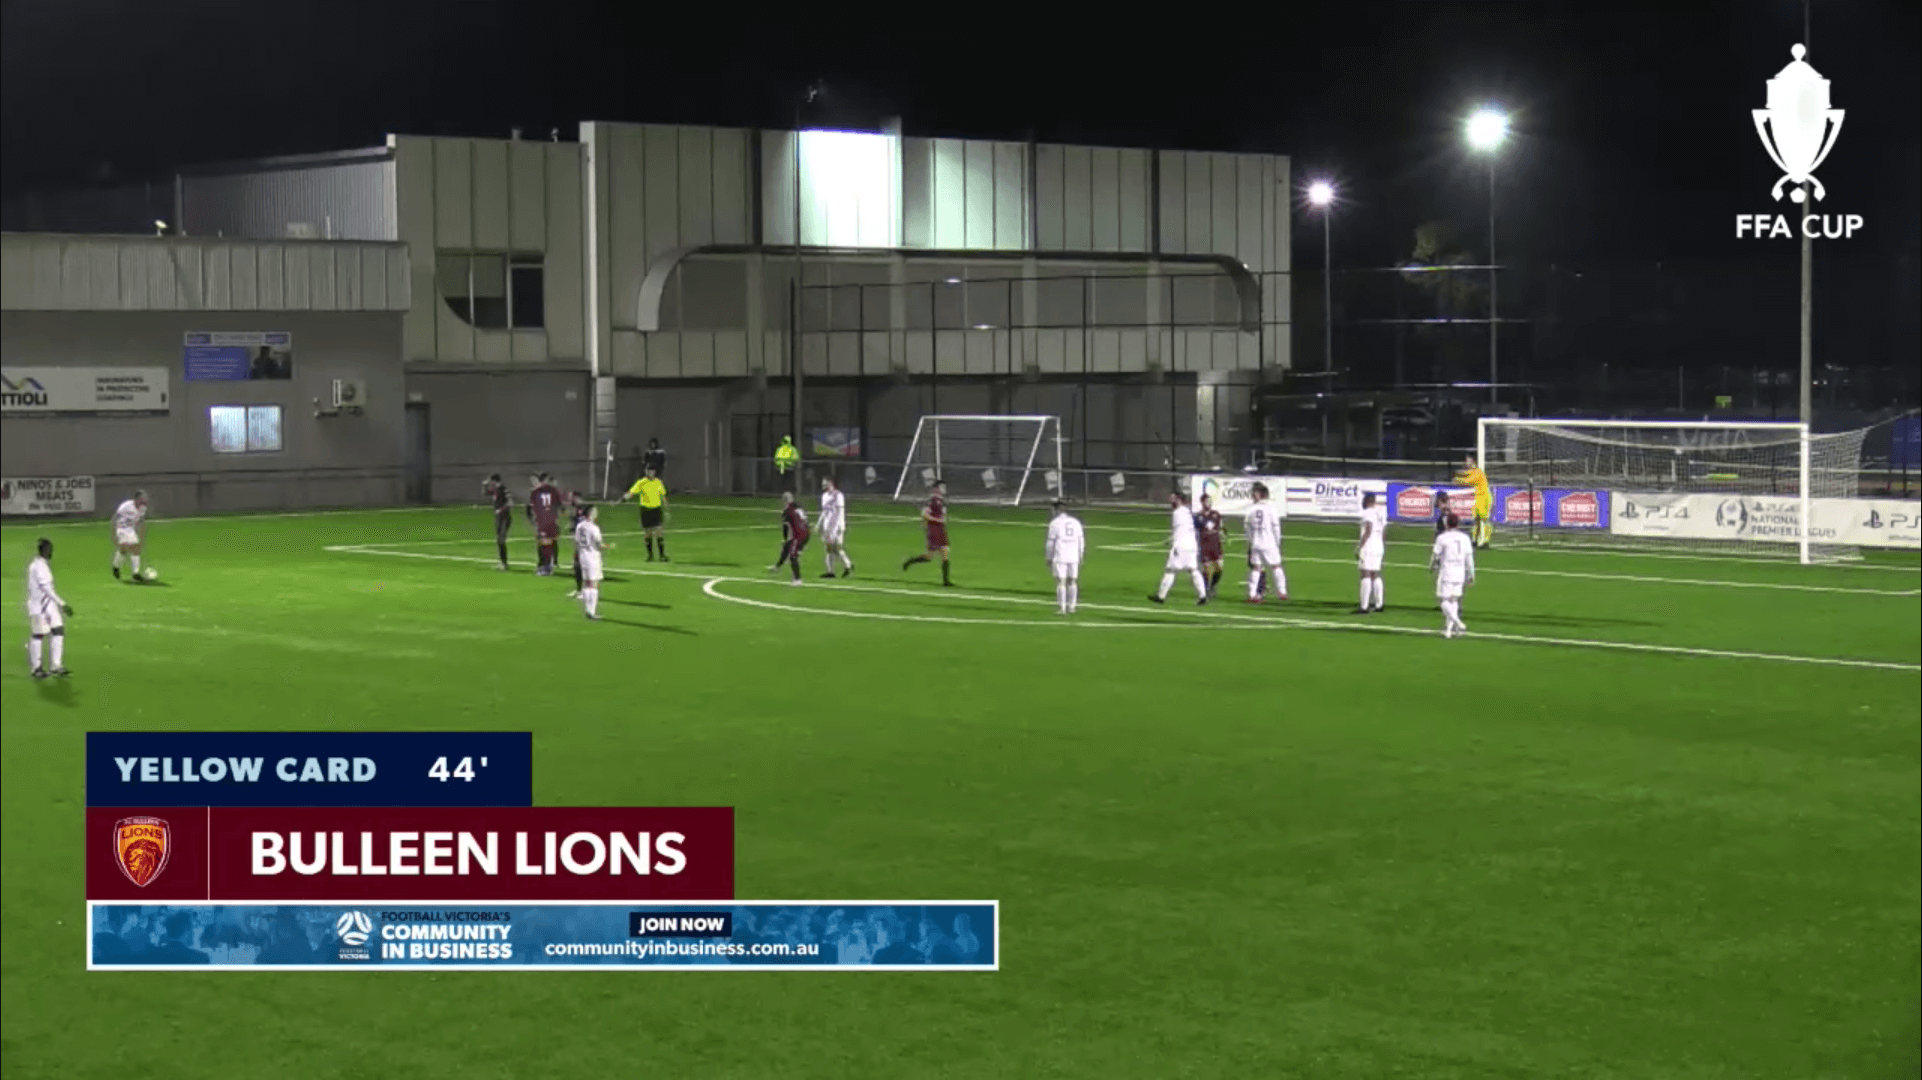 Football Victoria live stream, with automated graphics and sponsorship integration, powered by LIGR.Live.